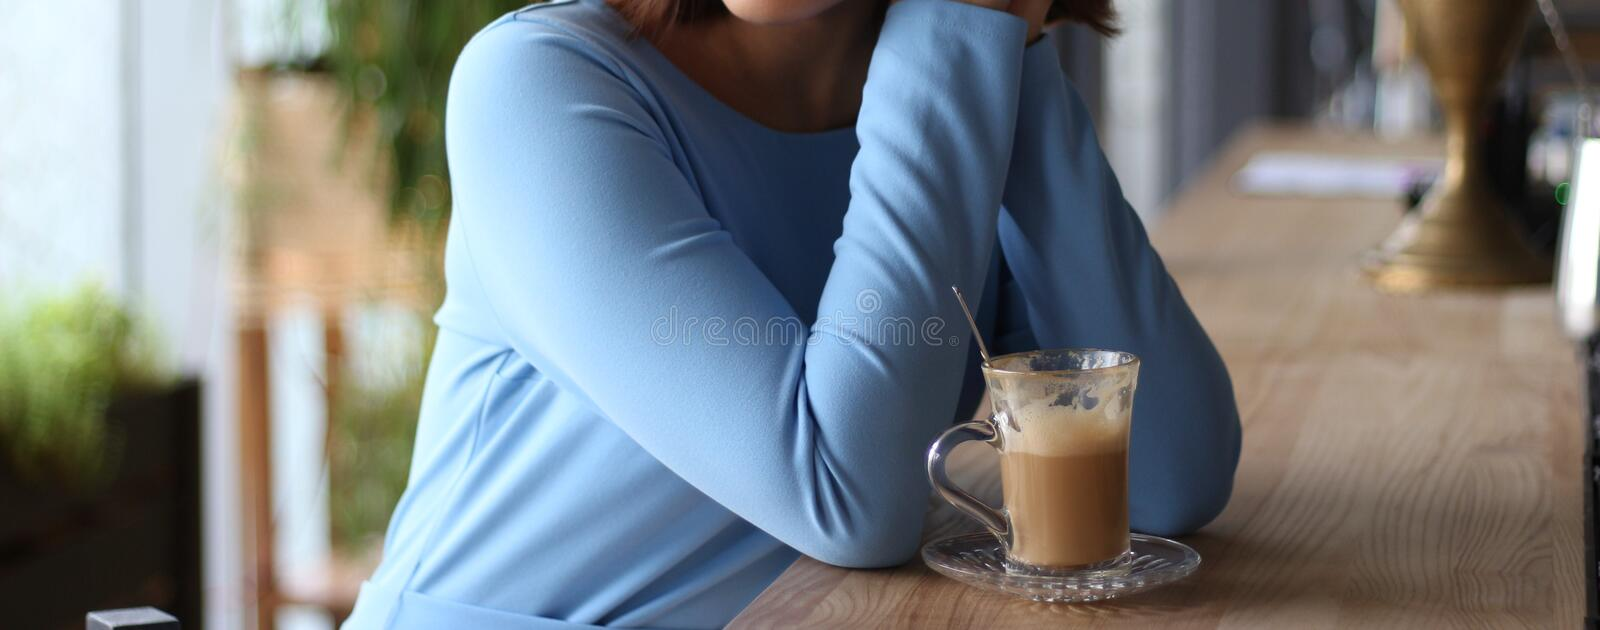 Girl in blue dress sits at a bar counter and drinks coffee.expectation of meeting, meeting. Girl in blue dress sits at a bar counter and drinks coffee royalty free stock image